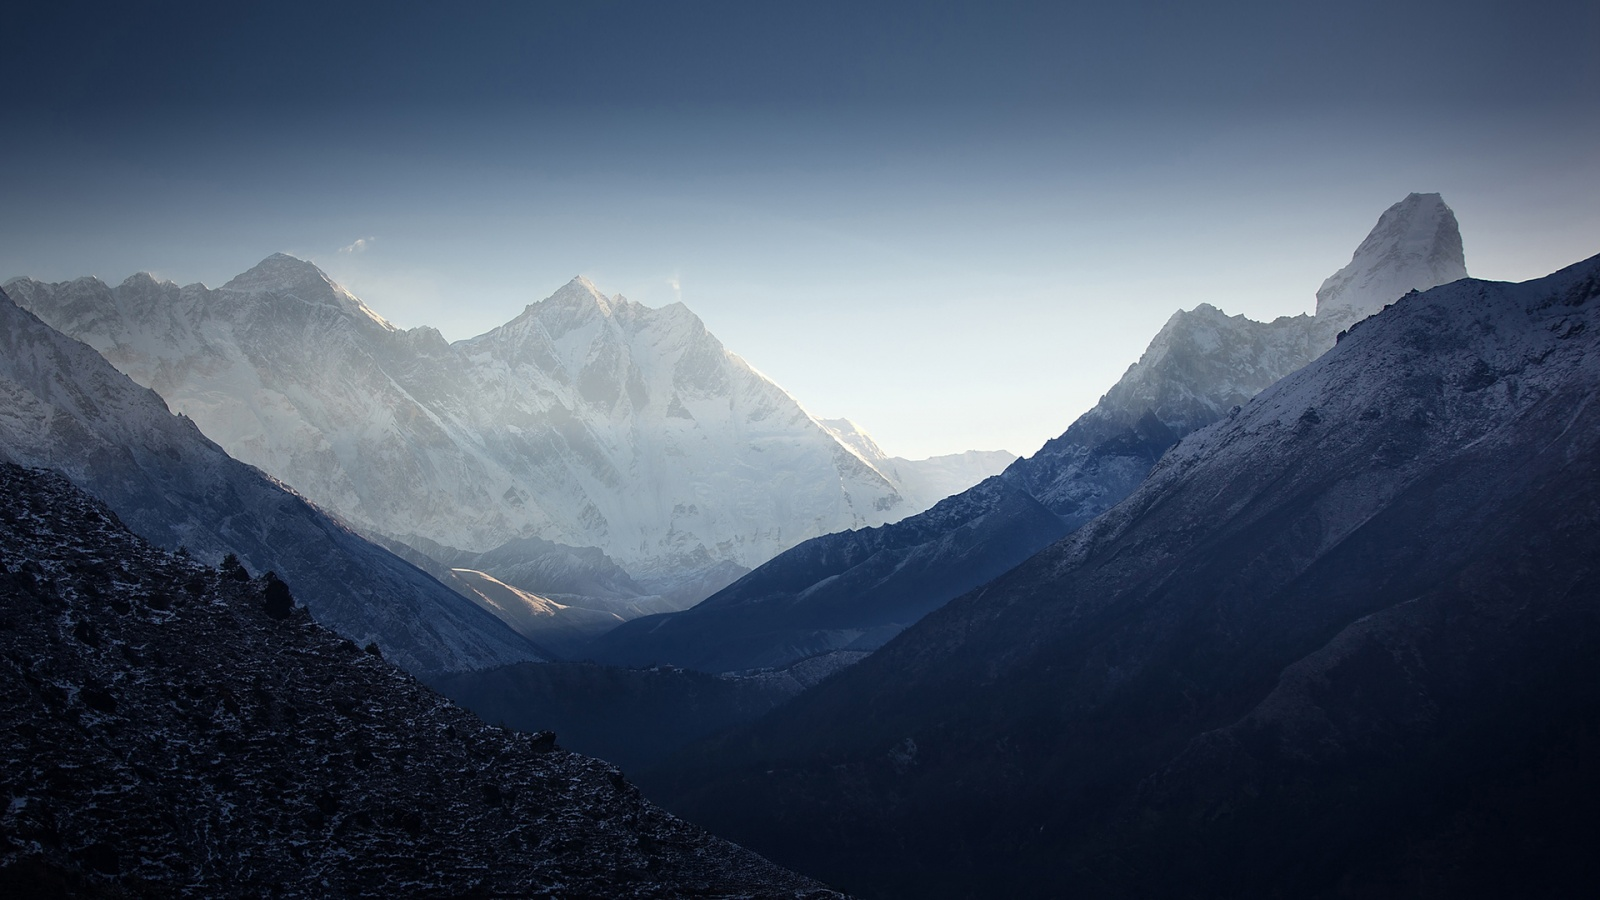 ... himalayas-mountain-valley-wallpaper-widescreen-background ...